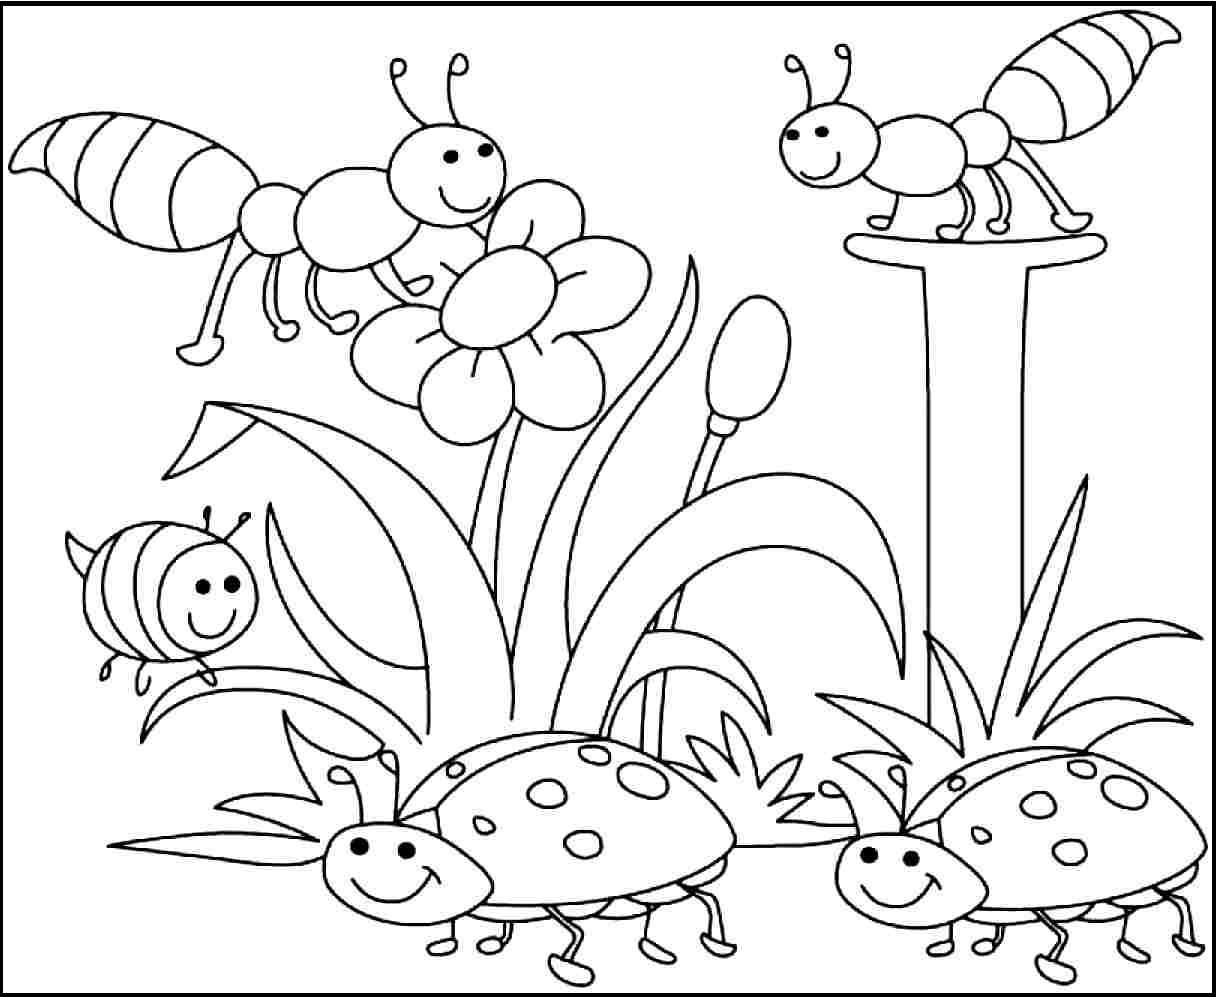 1216x997 Coloring Pages Pdf Luxury Coloring Pages Great Spring Coloring